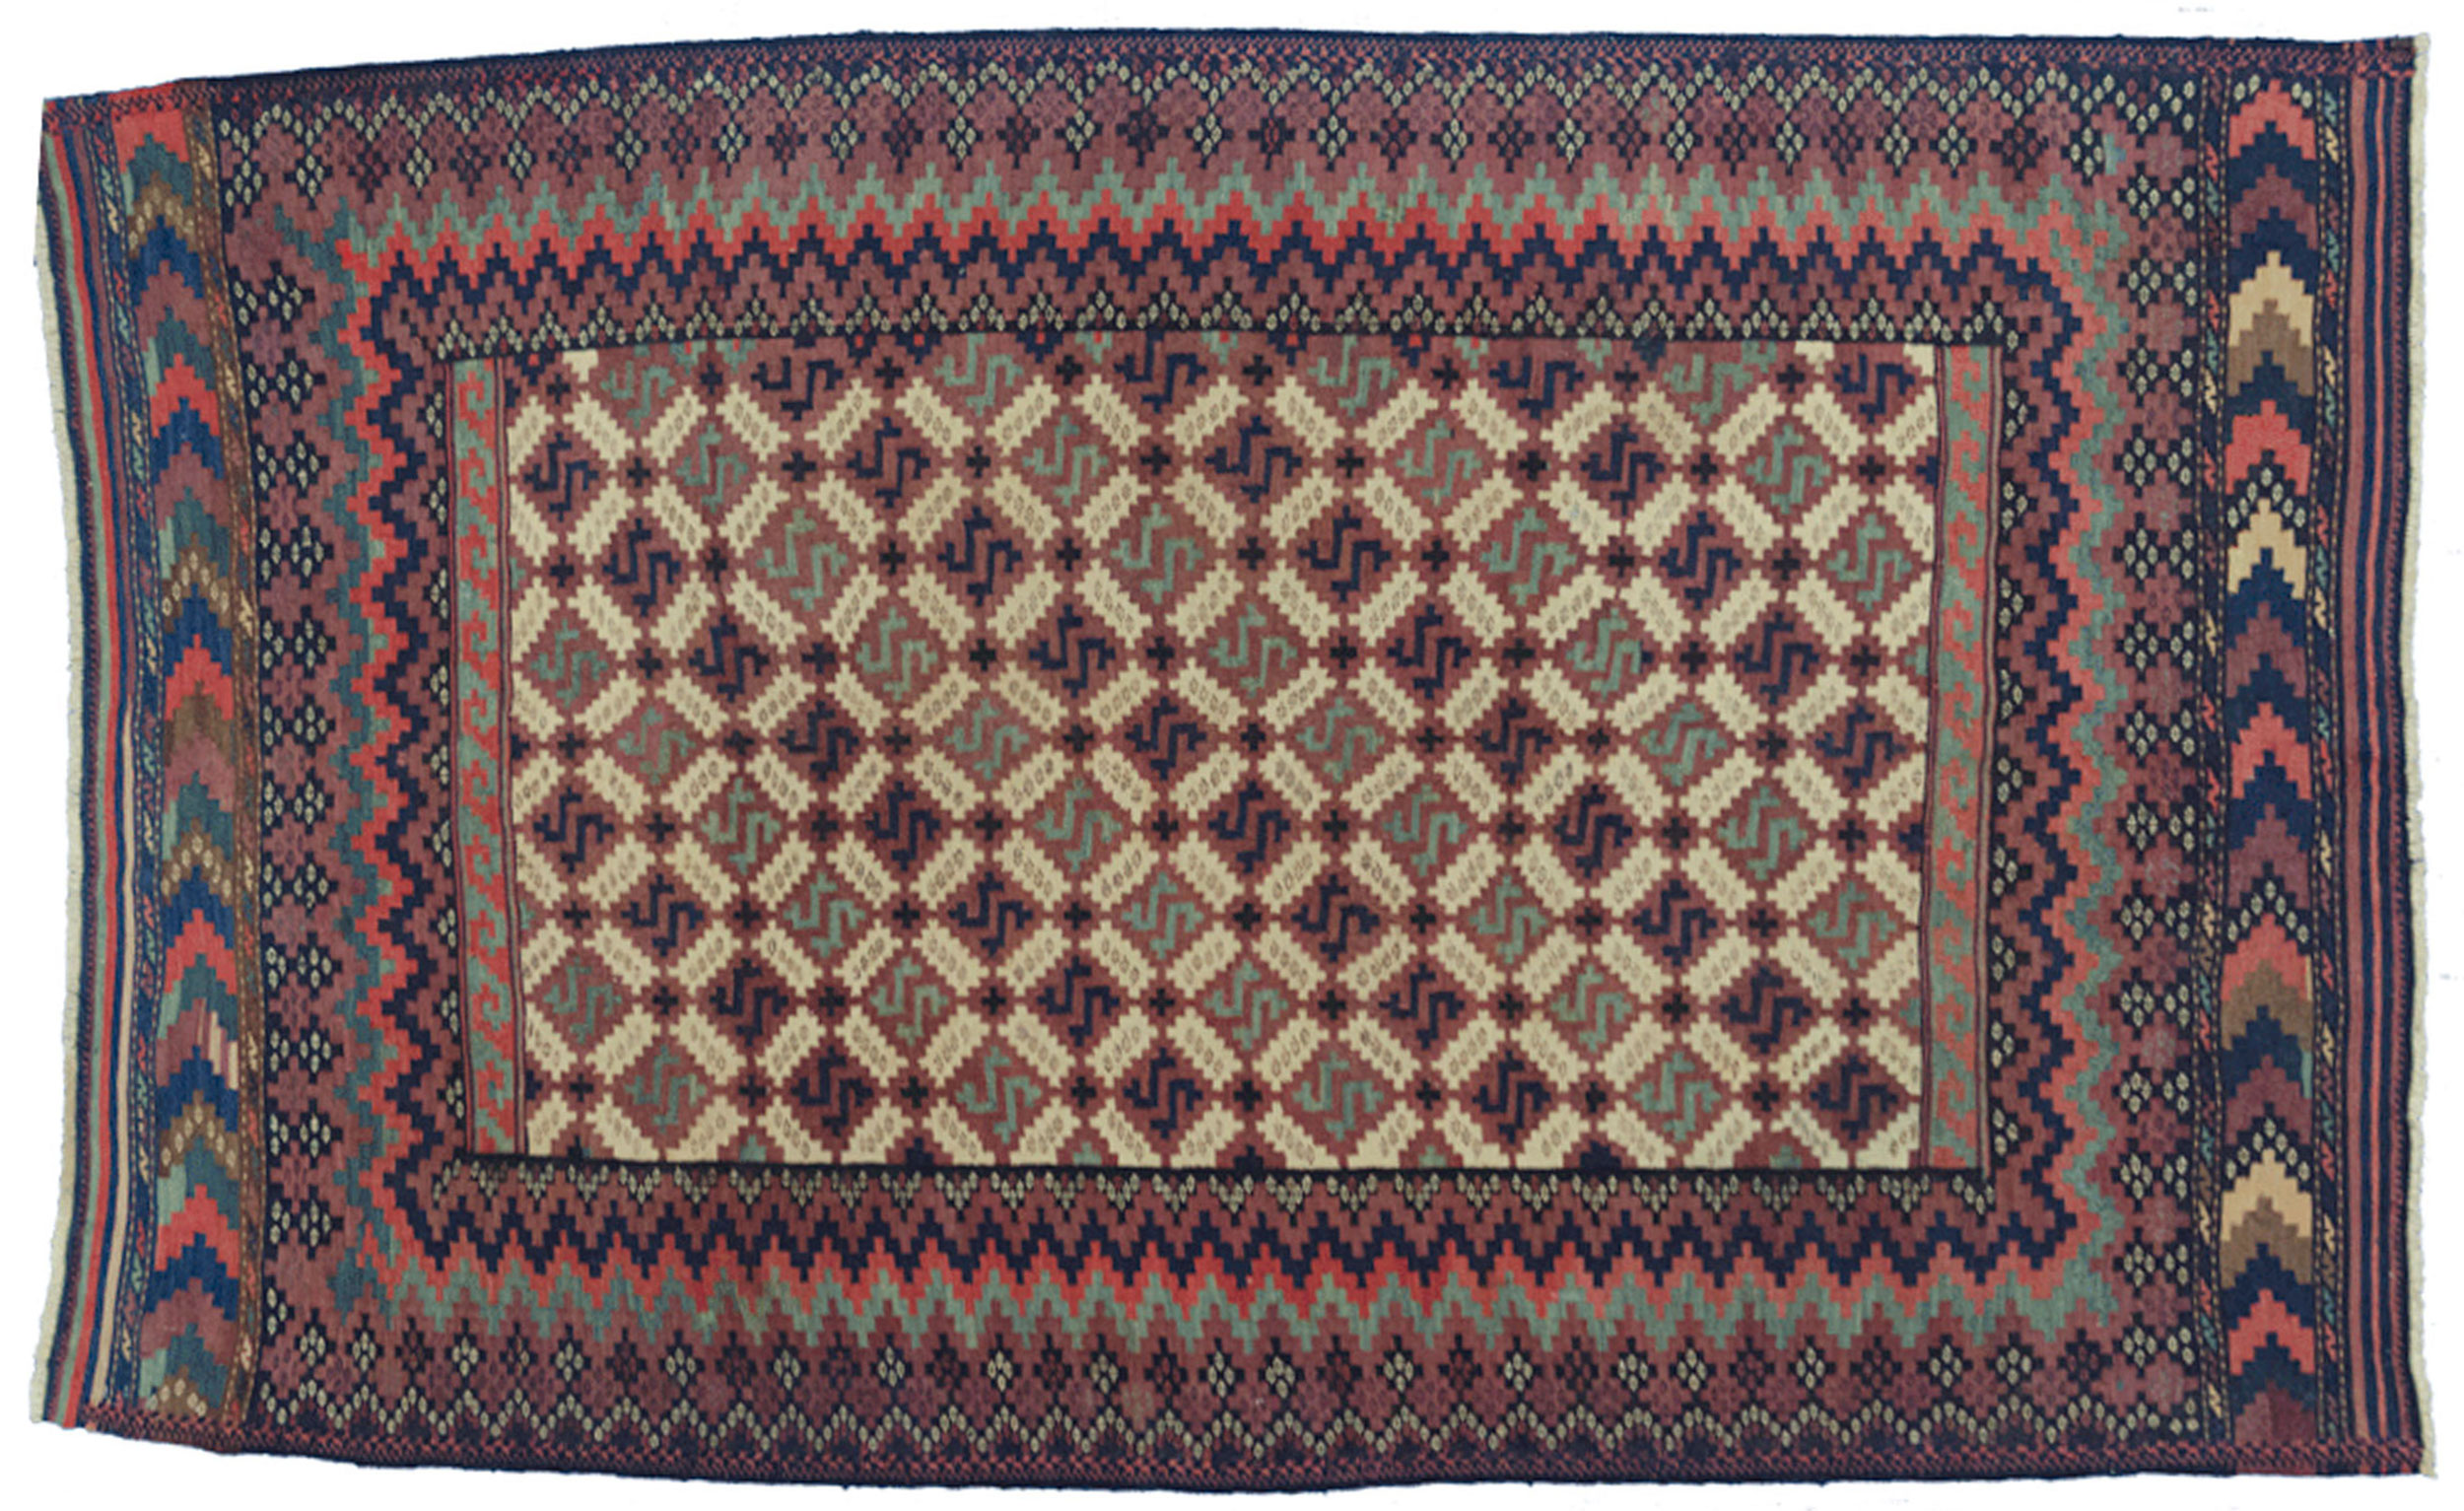 Antique Afshar Kilim Rug 234x147cm